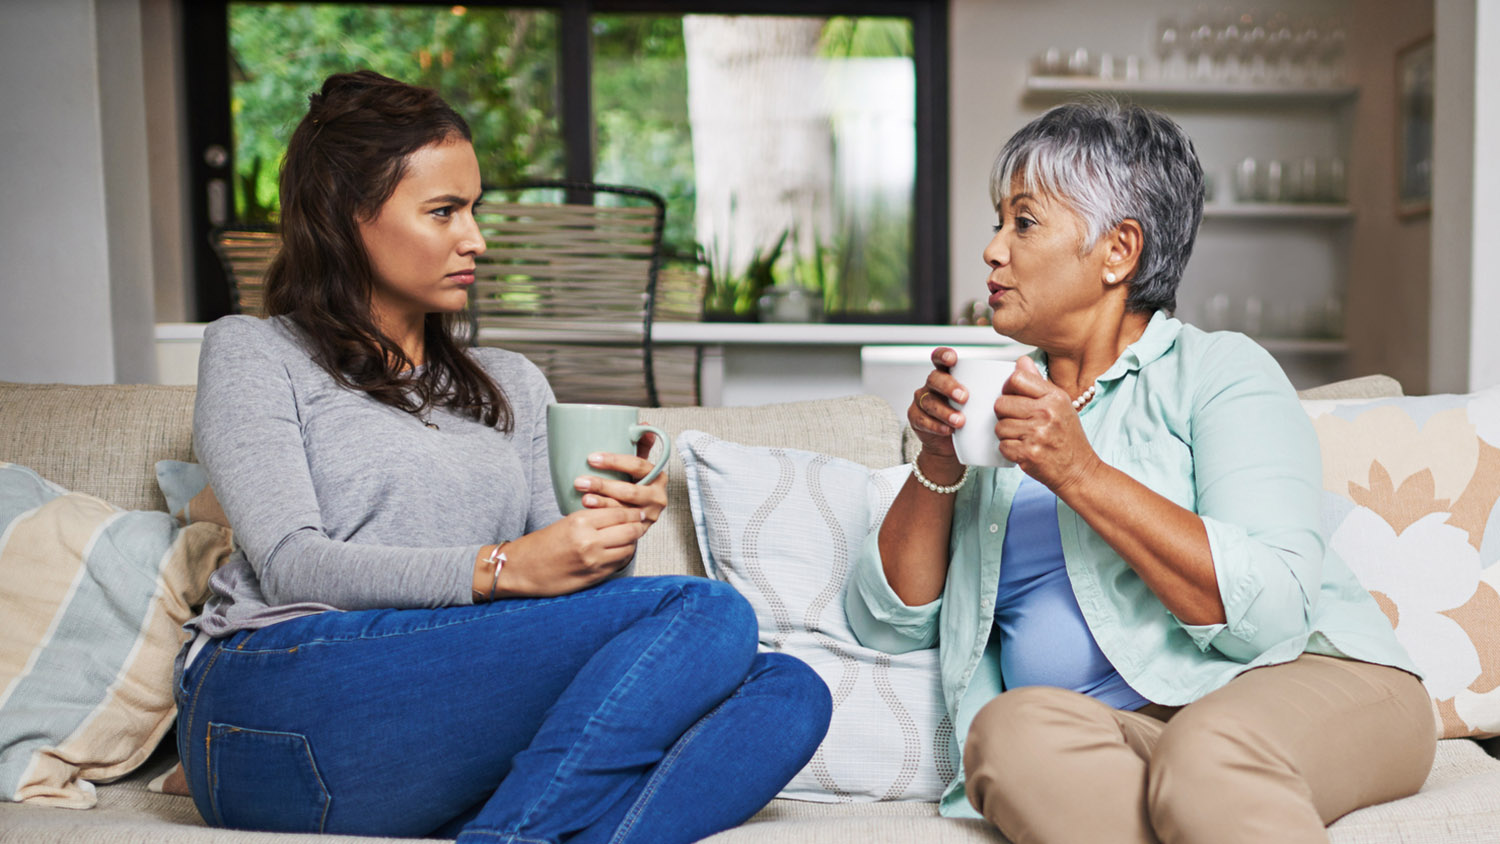 Mother talking to Grown child who makes bad decisions